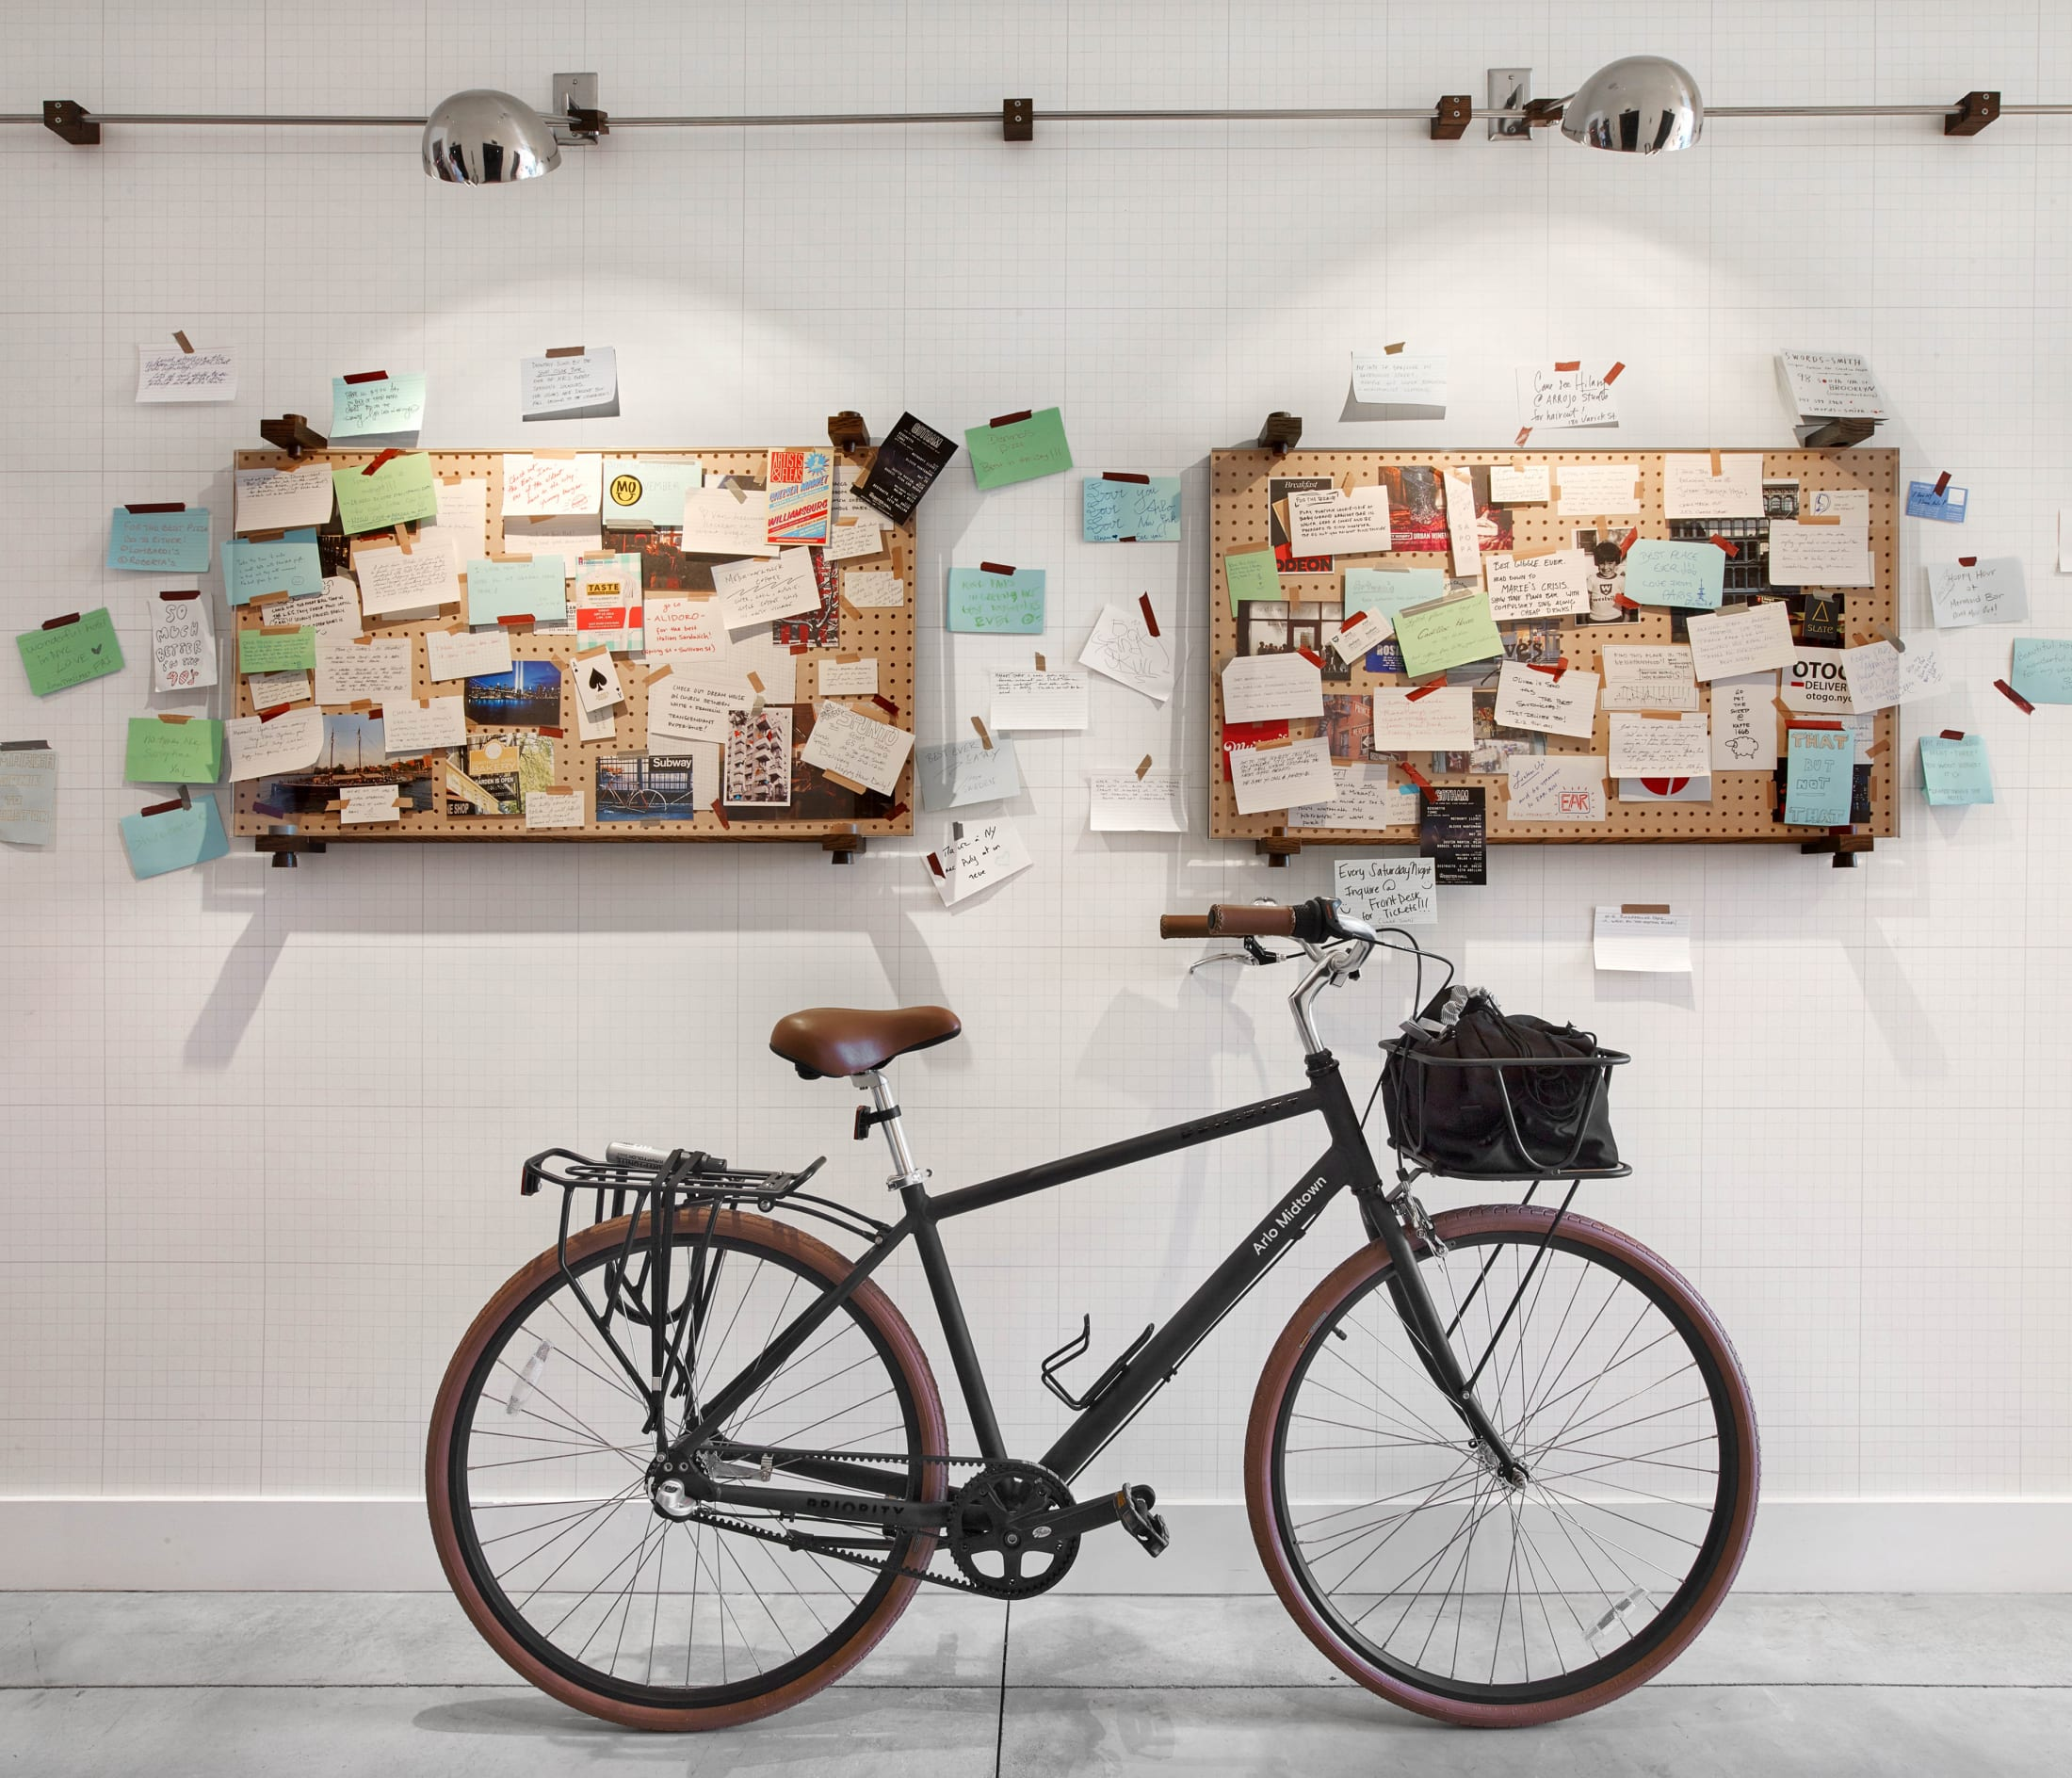 Arlo Midtown bike in front of sharing wall full of notes and cards